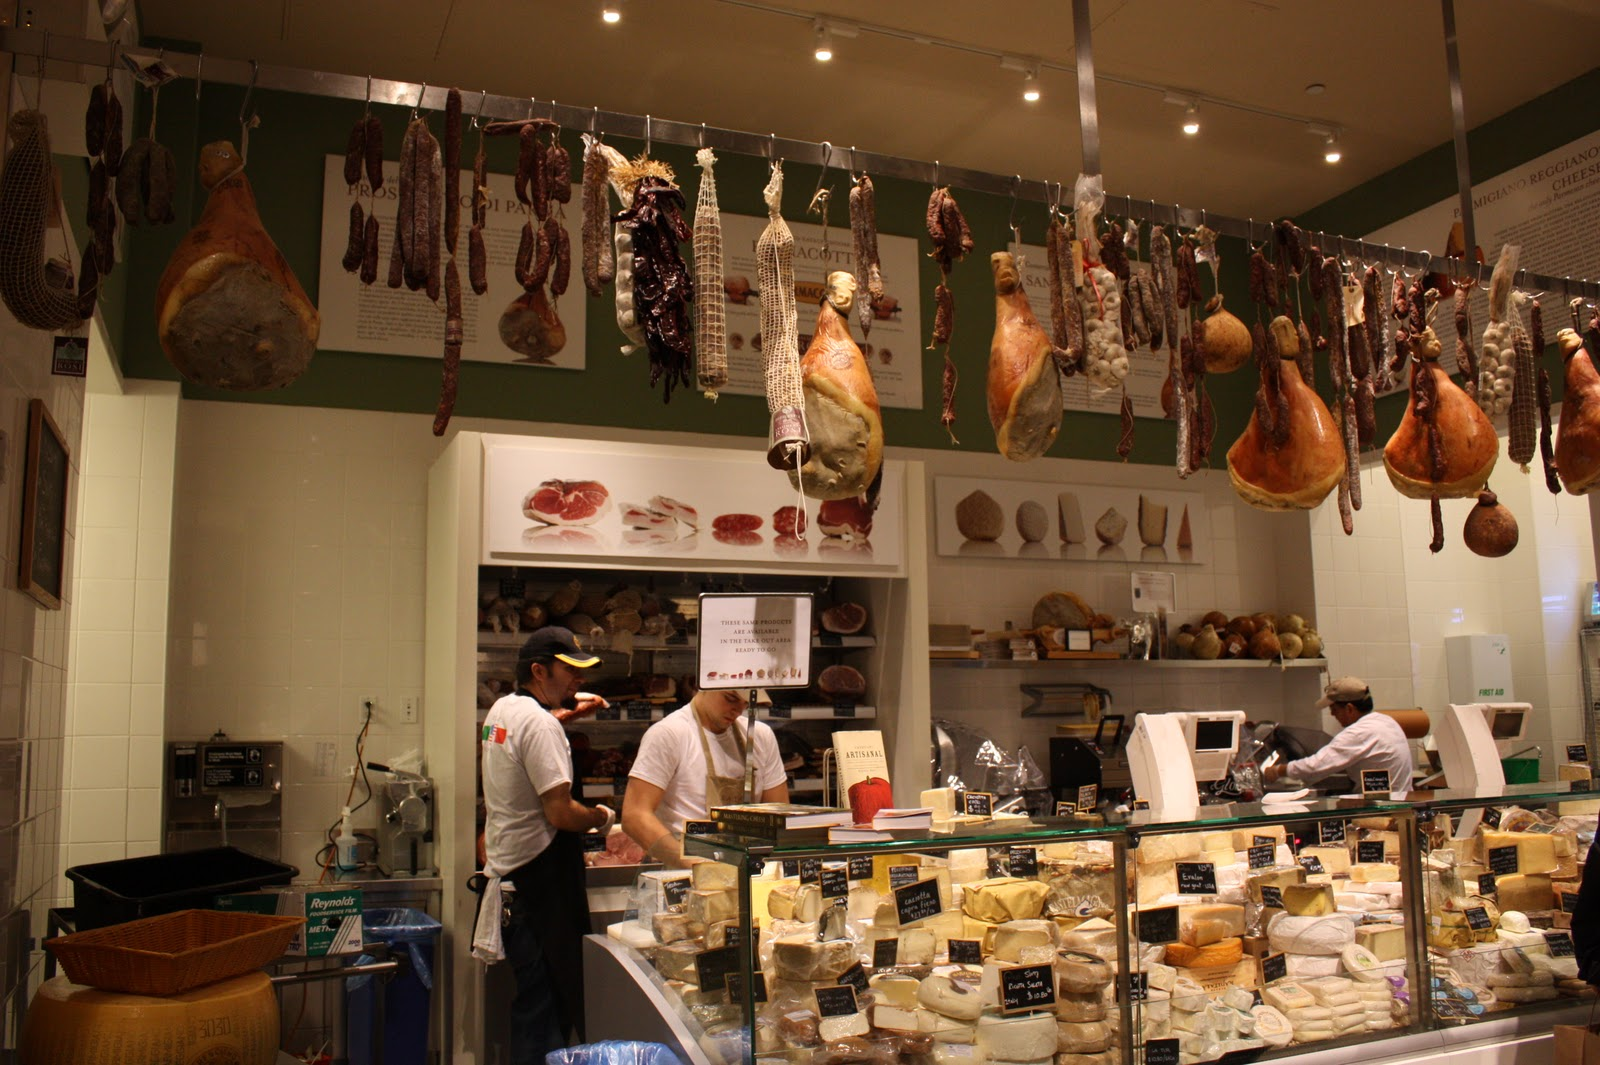 The VONG choice!: Eataly - in NY